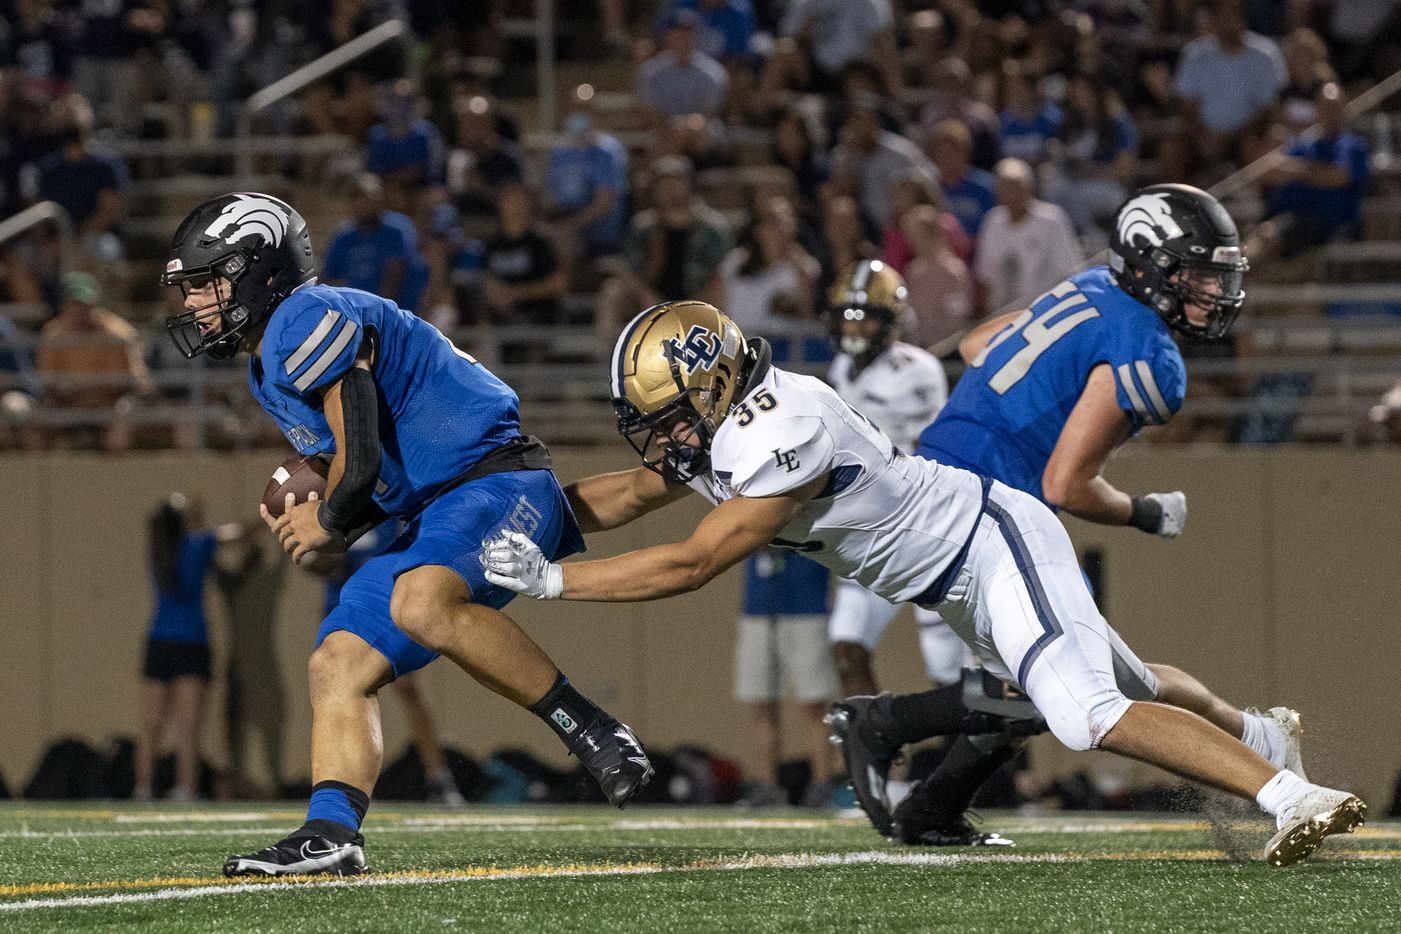 Plano West junior quarterback Vance Feuerbacher (19) tries to escape the tackle of Little Elm senior linebacker Tyson Bope (35) on a scramble during the first half of a high school football game on Friday, Sept. 10, 2021 at John Clark Stadium in Plano, Texas. (Jeffrey McWhorter/Special Contributor)